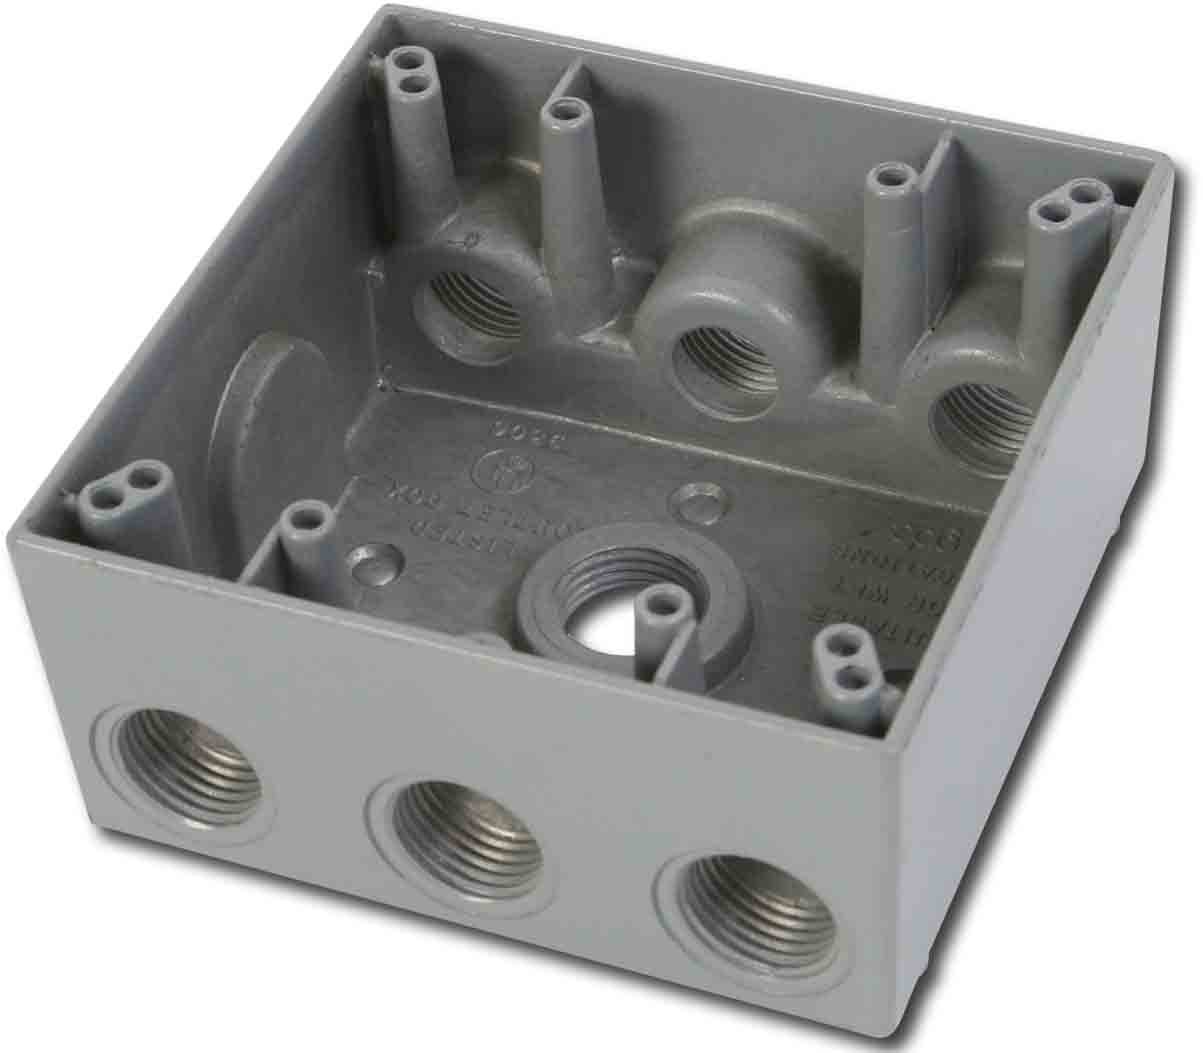 Made in USA Weatherproof Electrical Outlet Box (7) 1/2'' Holes - Gray